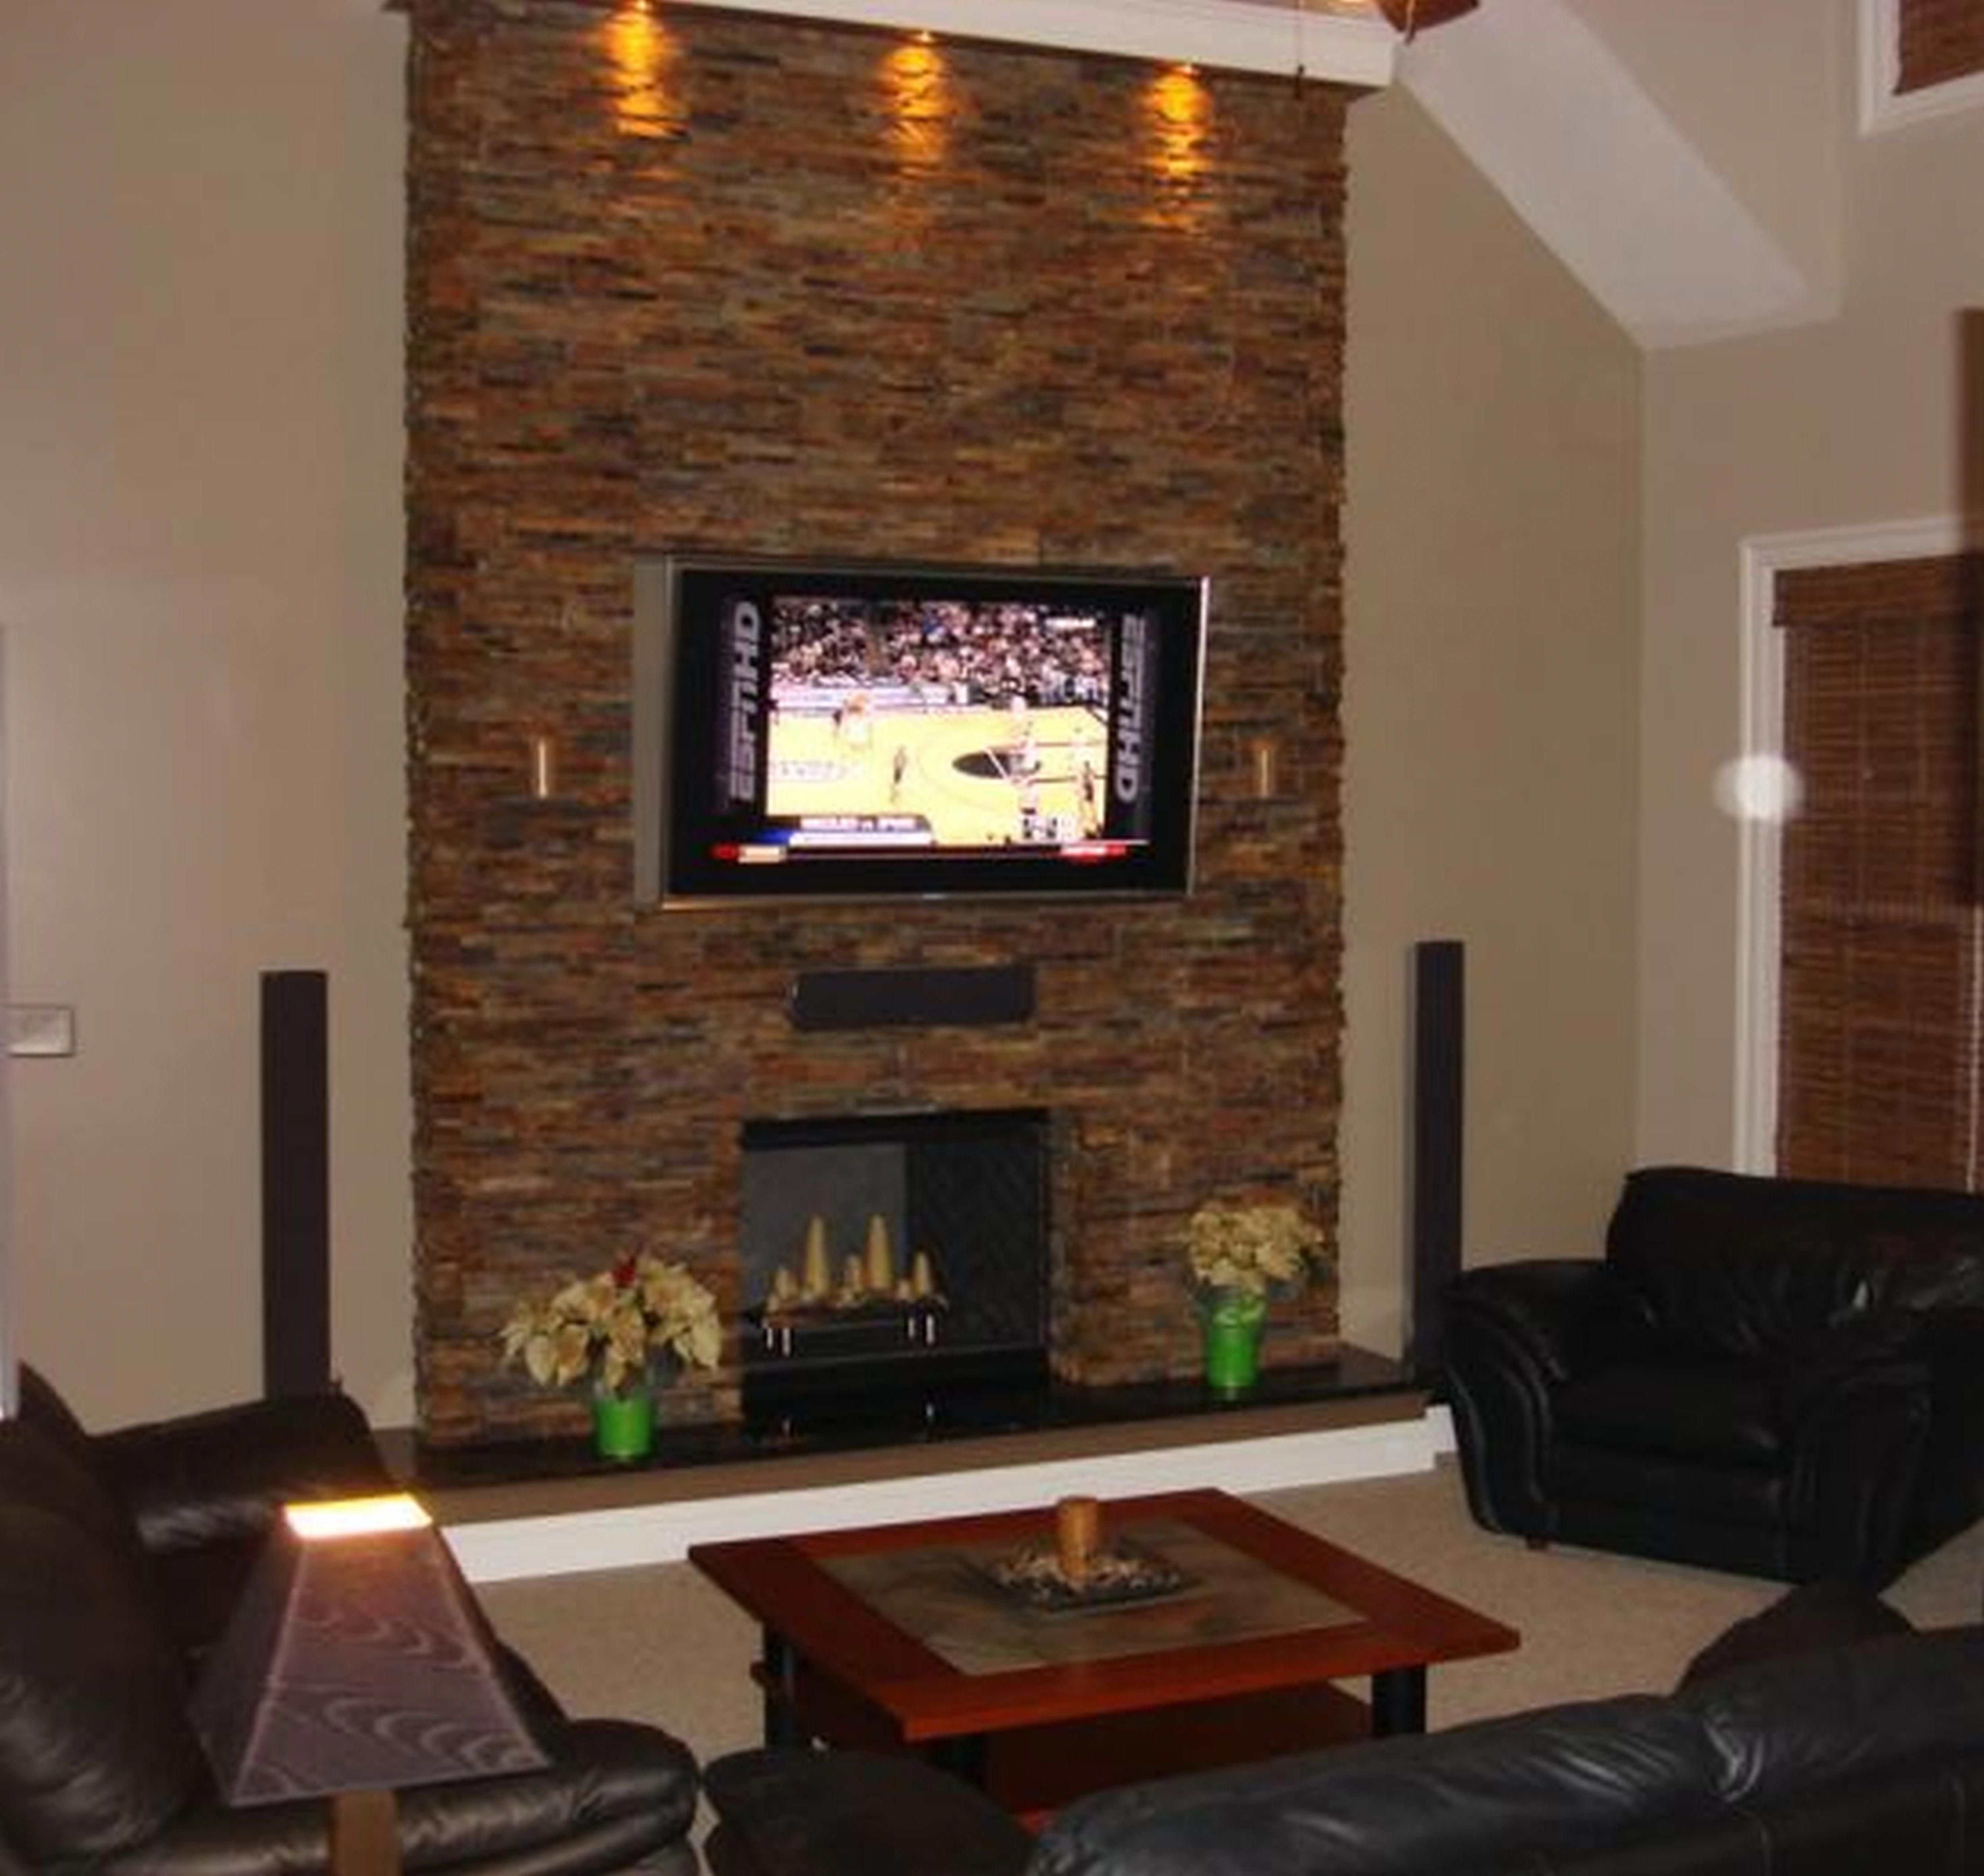 Tv Wall Ideas Tv Wall Ideas With Fireplace Tv Wall Ideas Design Tv Wall Decor Ideas Tv Feat Tv Feature Wall Feature Wall Living Room Beautiful Living Rooms